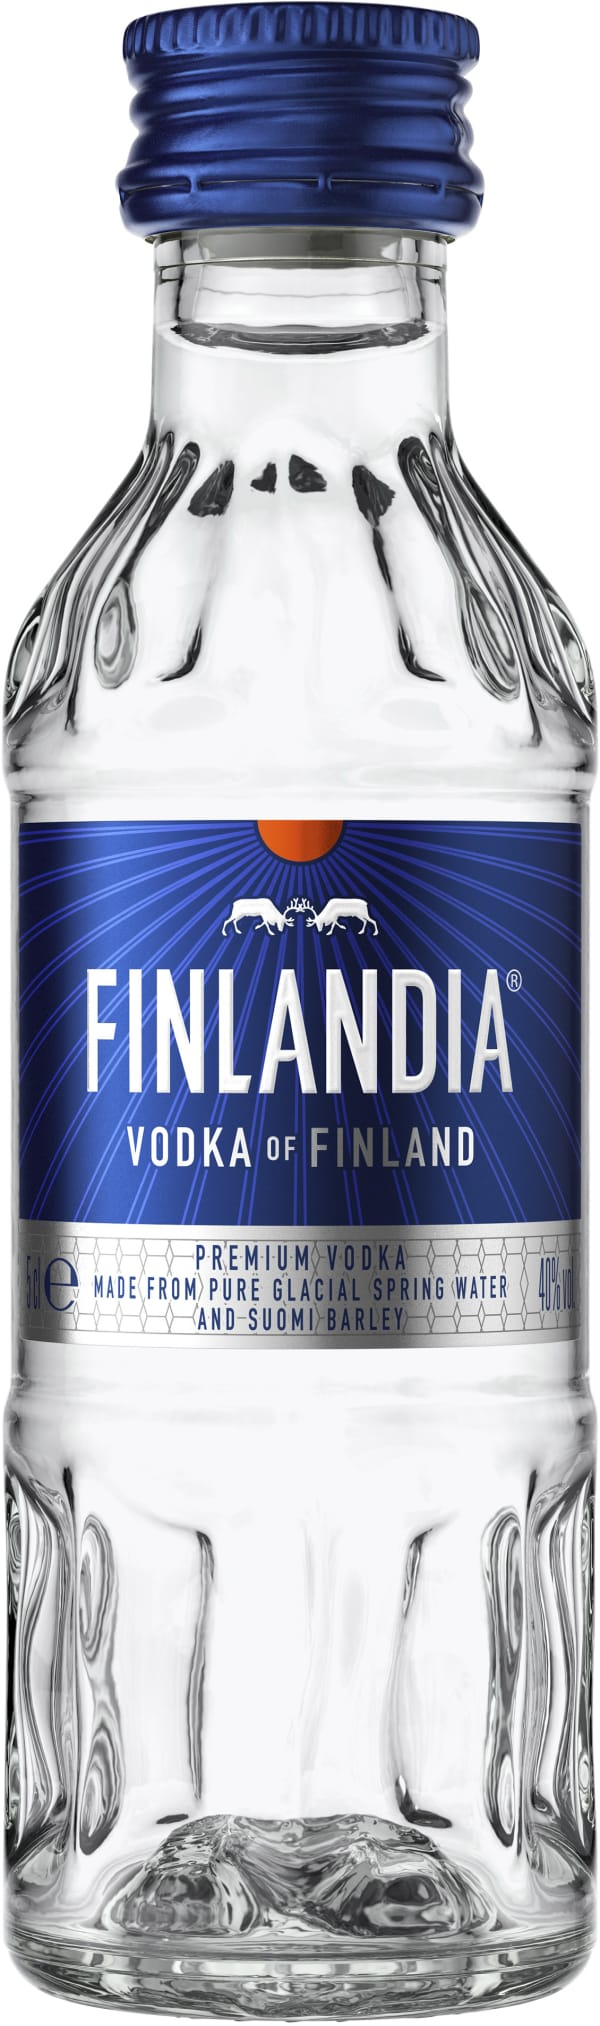 Finlandia Vodka plastic bottle